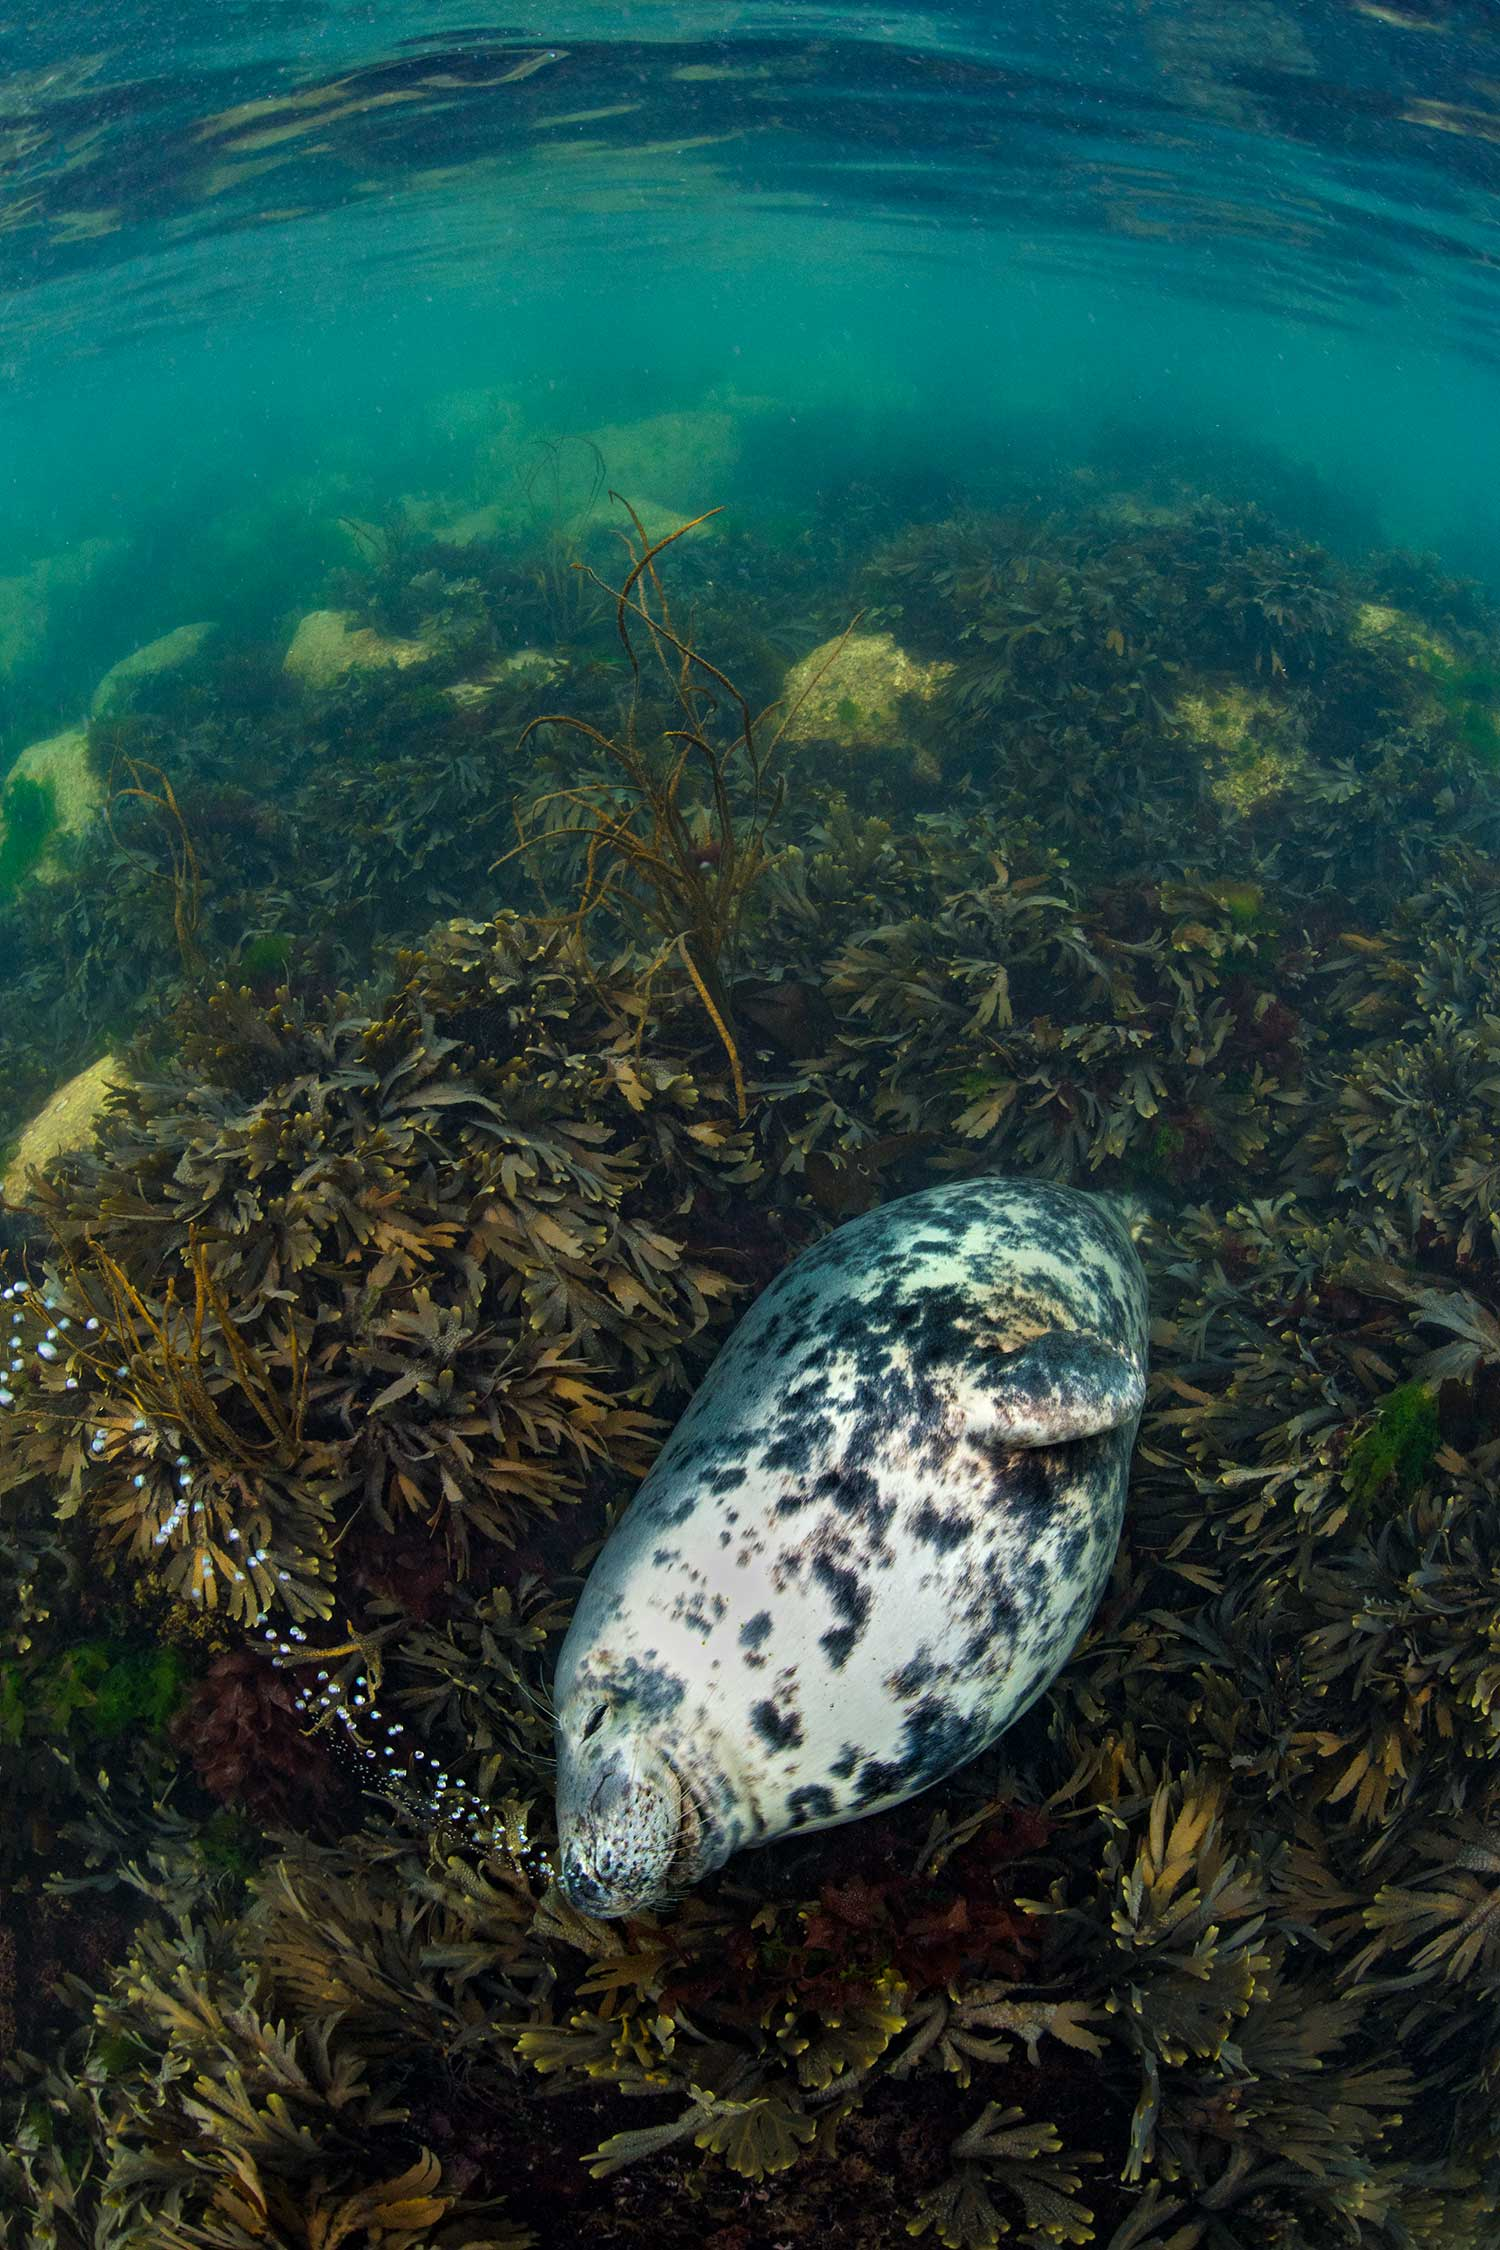 snoring seal british wildlife photography award by alex mustard